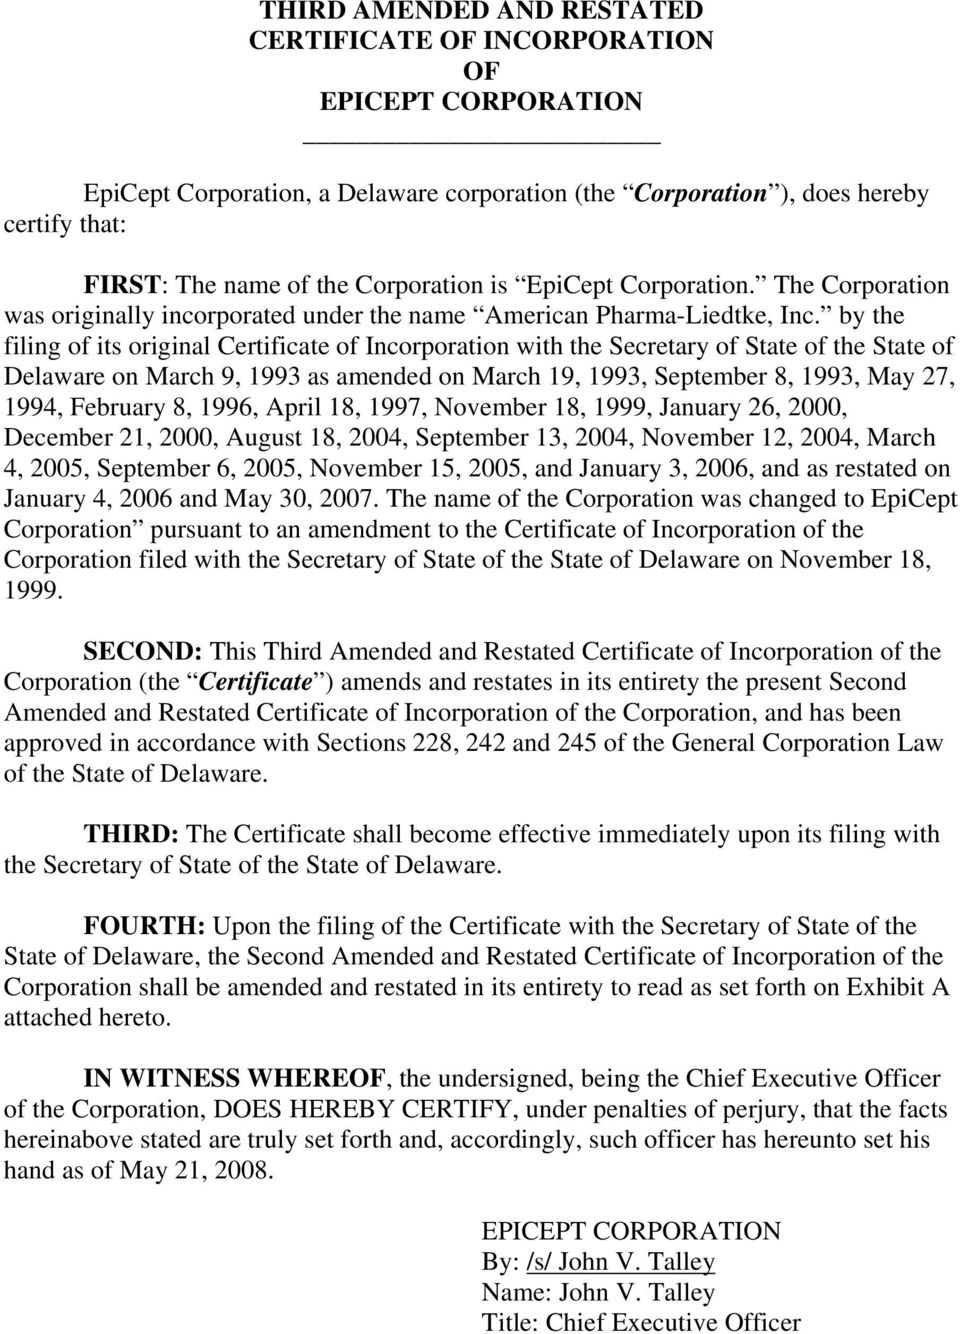 by the filing of its original Certificate of Incorporation with the Secretary of State of the State of Delaware on March 9, 1993 as amended on March 19, 1993, September 8, 1993, May 27, 1994,